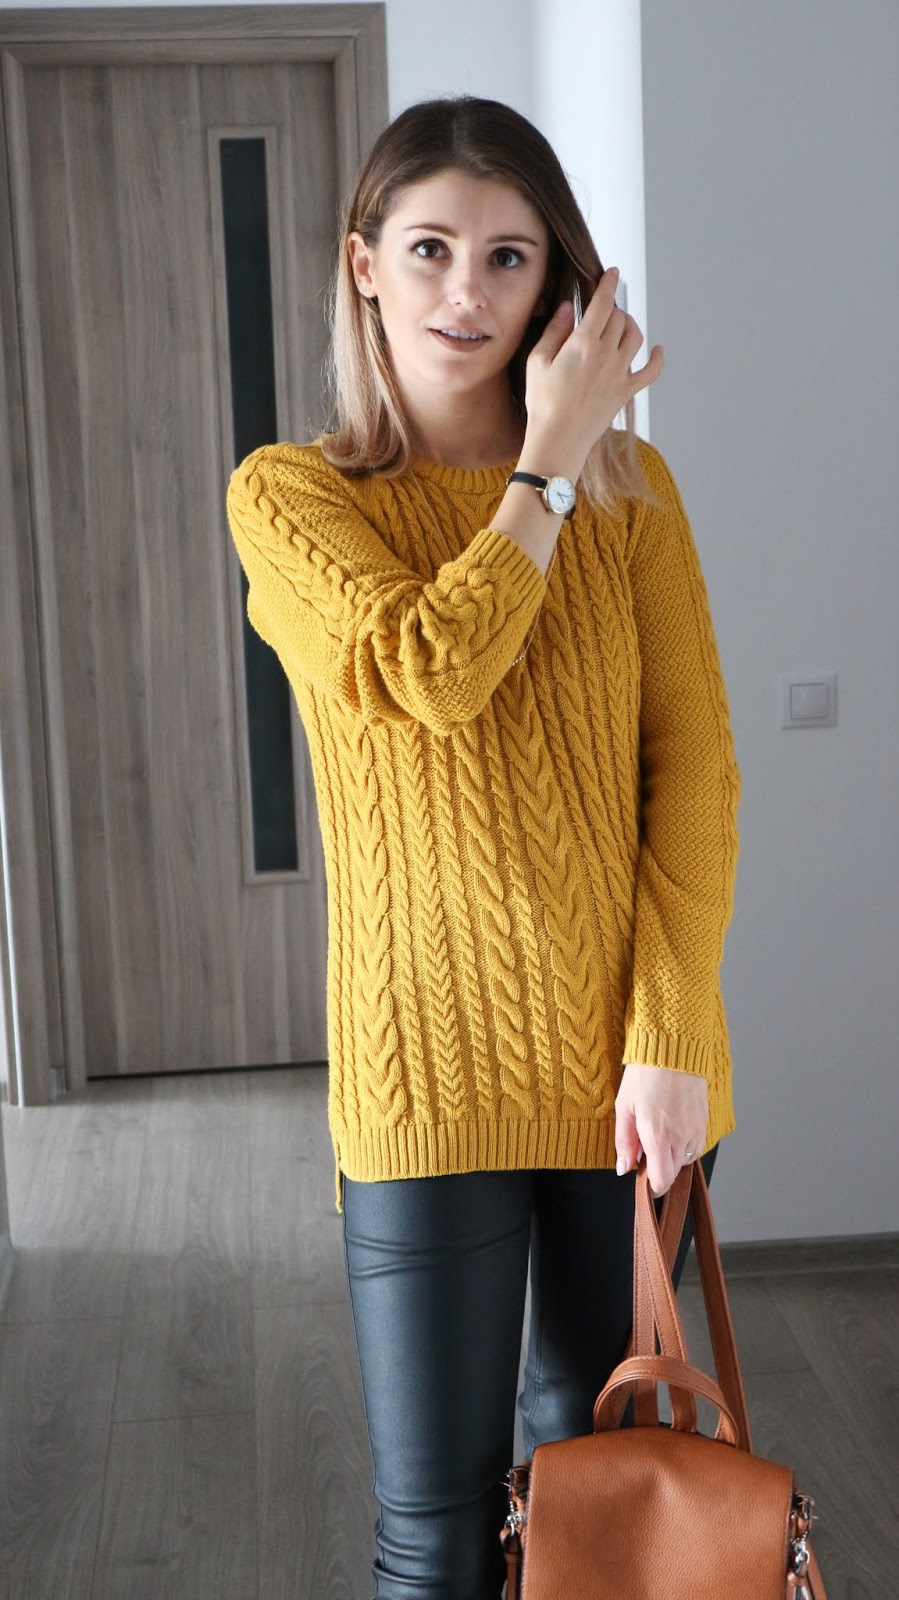 how to wear mustard sweater for autumn